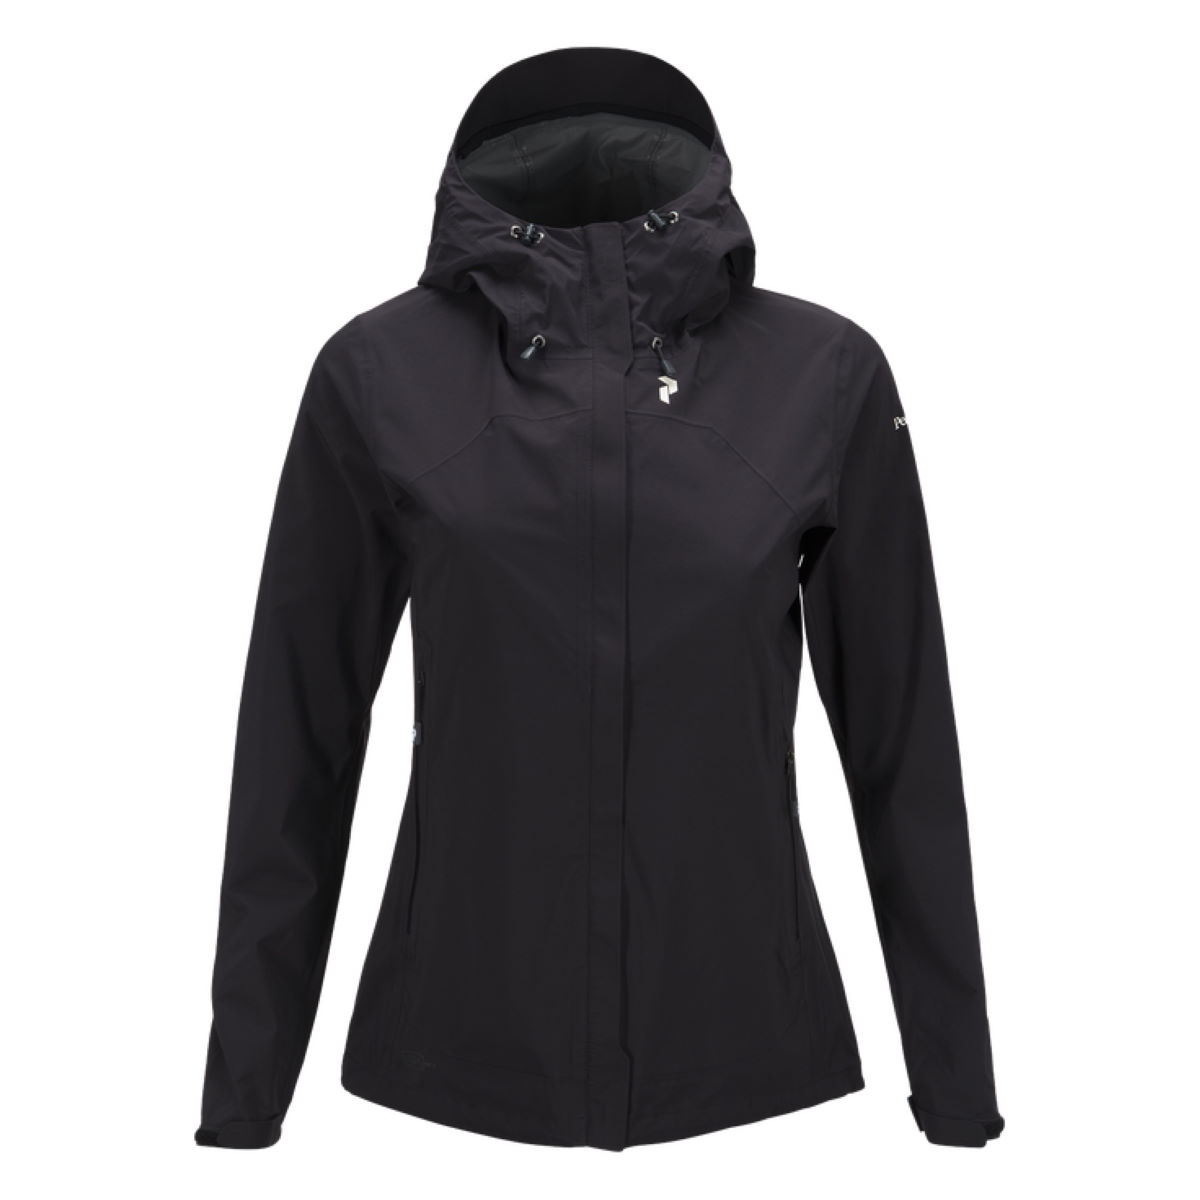 Veste Femme Peak Performance Swift - XL Noir Vestes